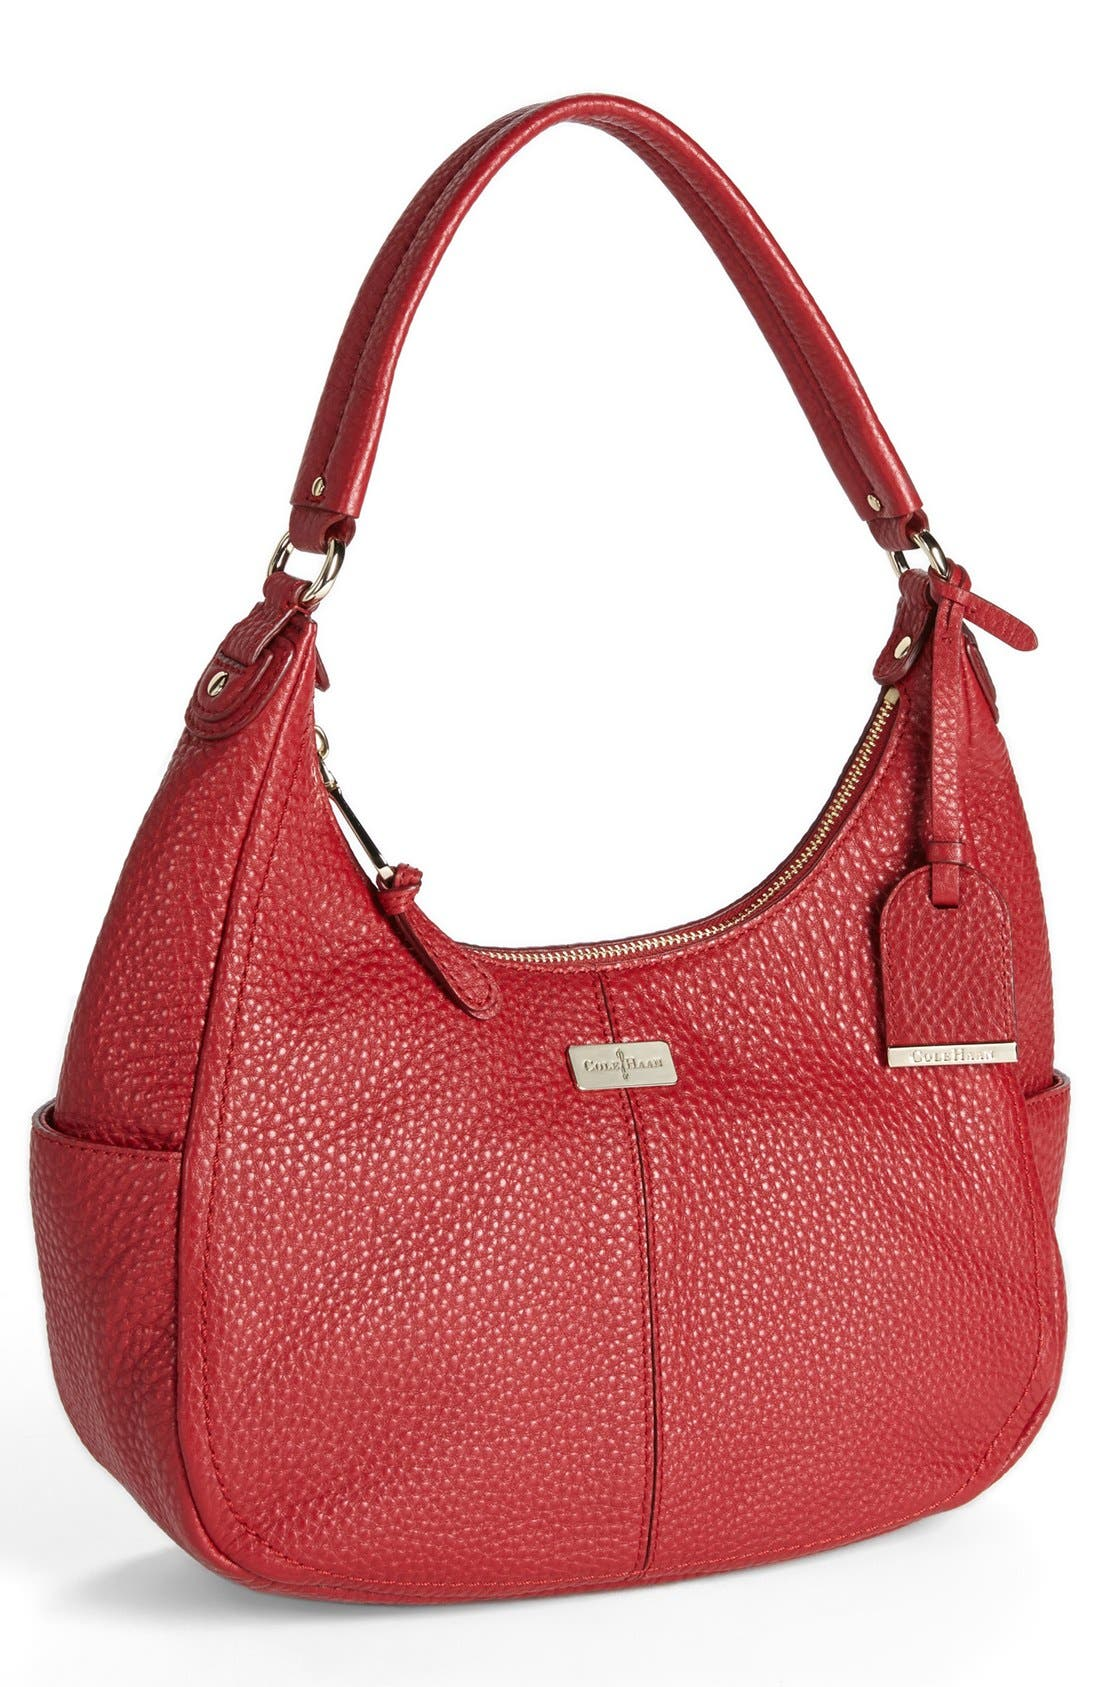 Alternate Image 1 Selected - Cole Haan 'Village - Small' Hobo